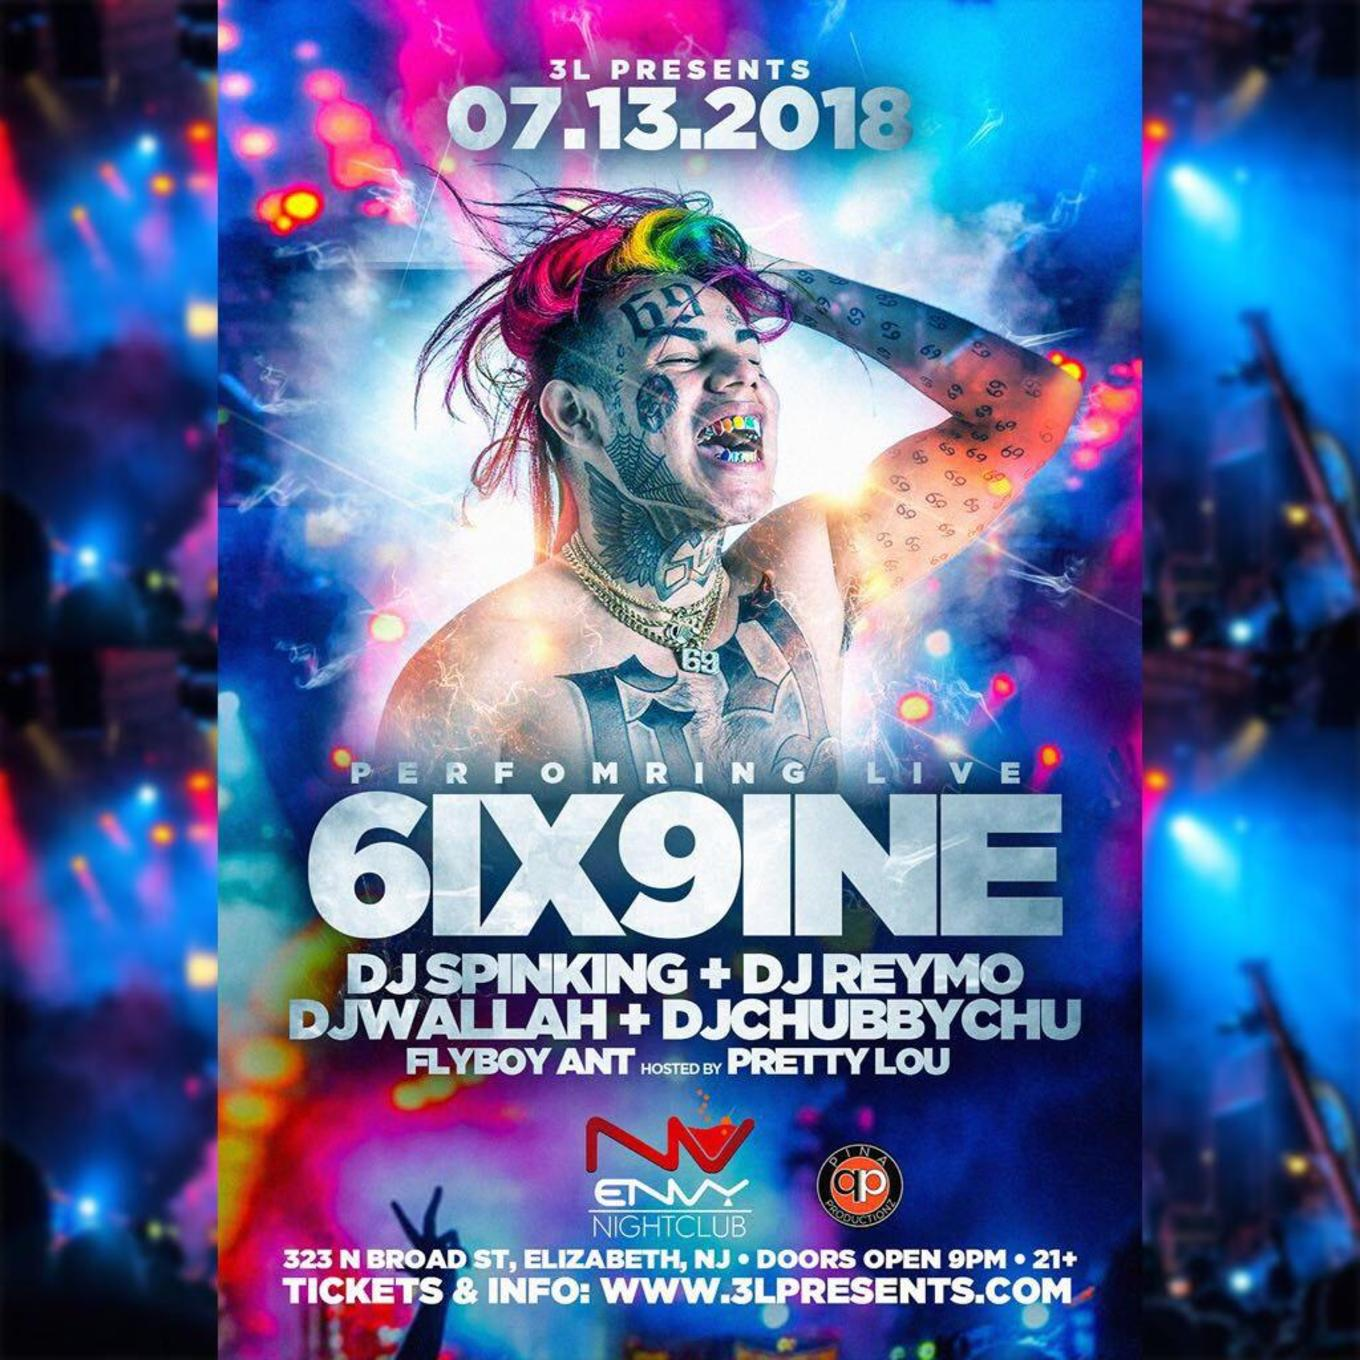 TEKASHI 6IX9INE Live At Club Envy